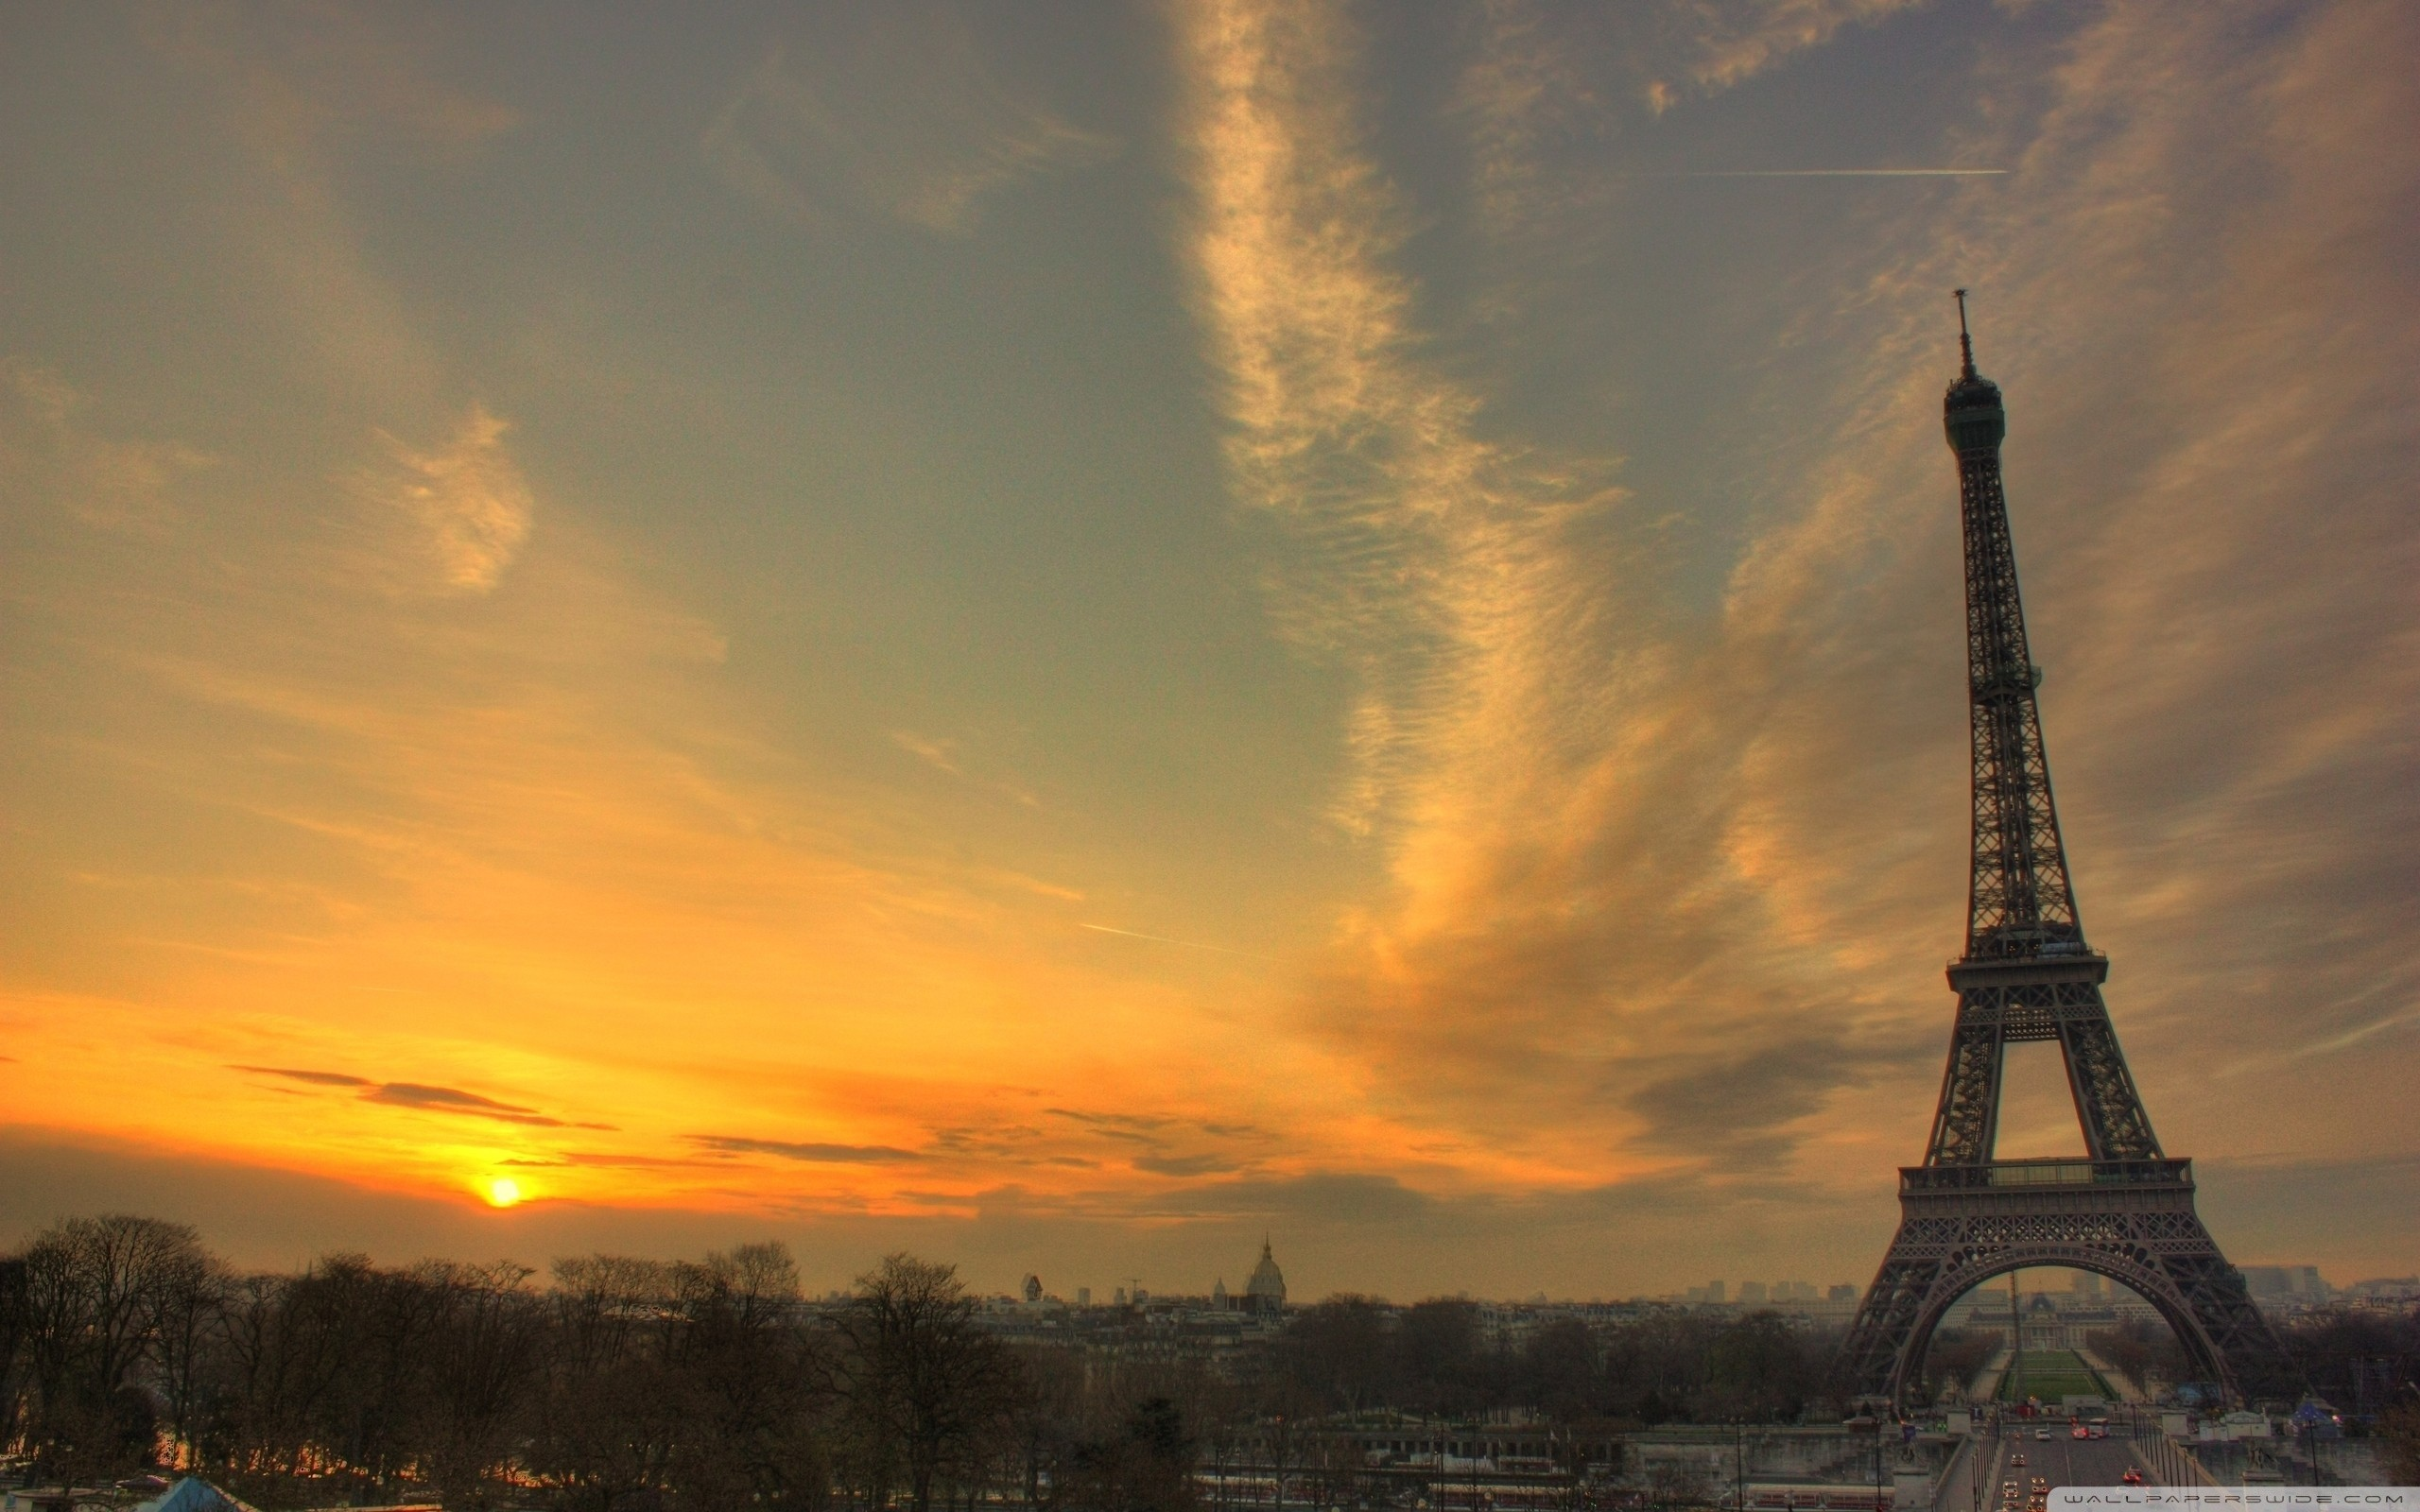 2560x1600 8,00,000 Cool Wallpaper for Retina Display download free without ...  InterfaceLIFT Wallpaper: Eiffel Tower ...